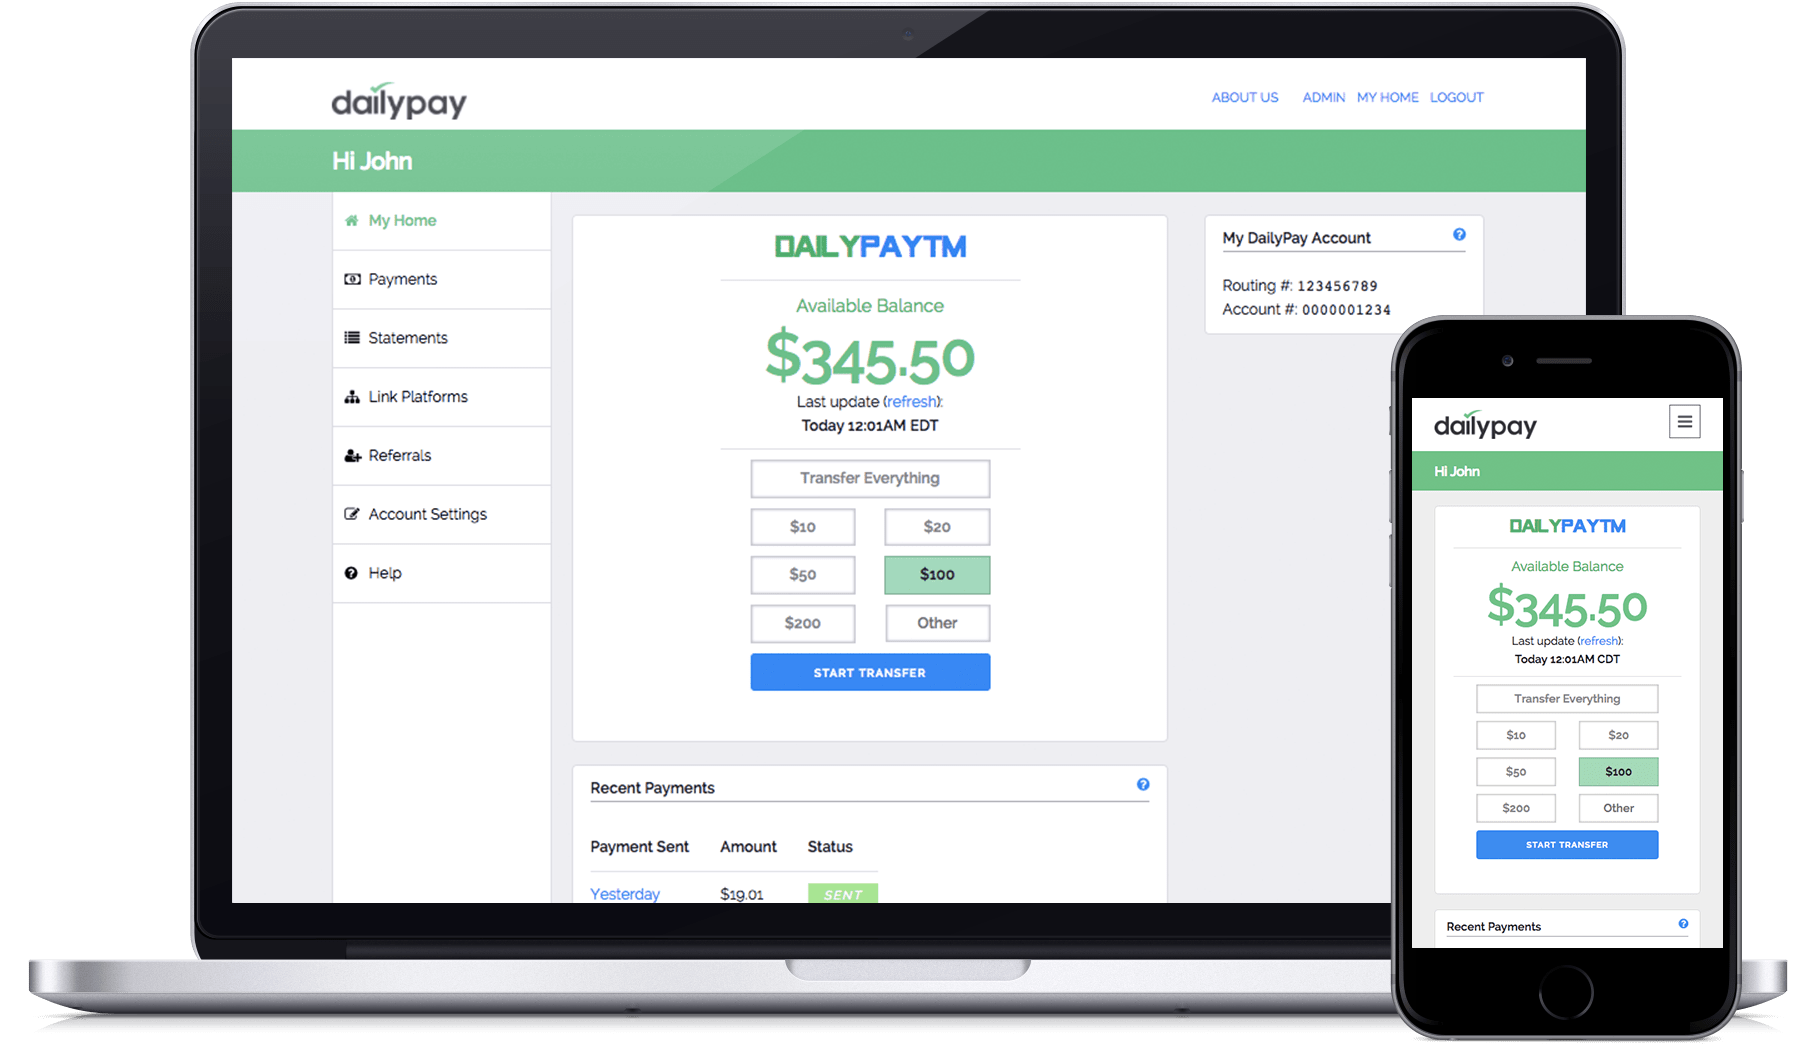 FinTech DailyPay Waiving Fees for Employees to Access Earned Income